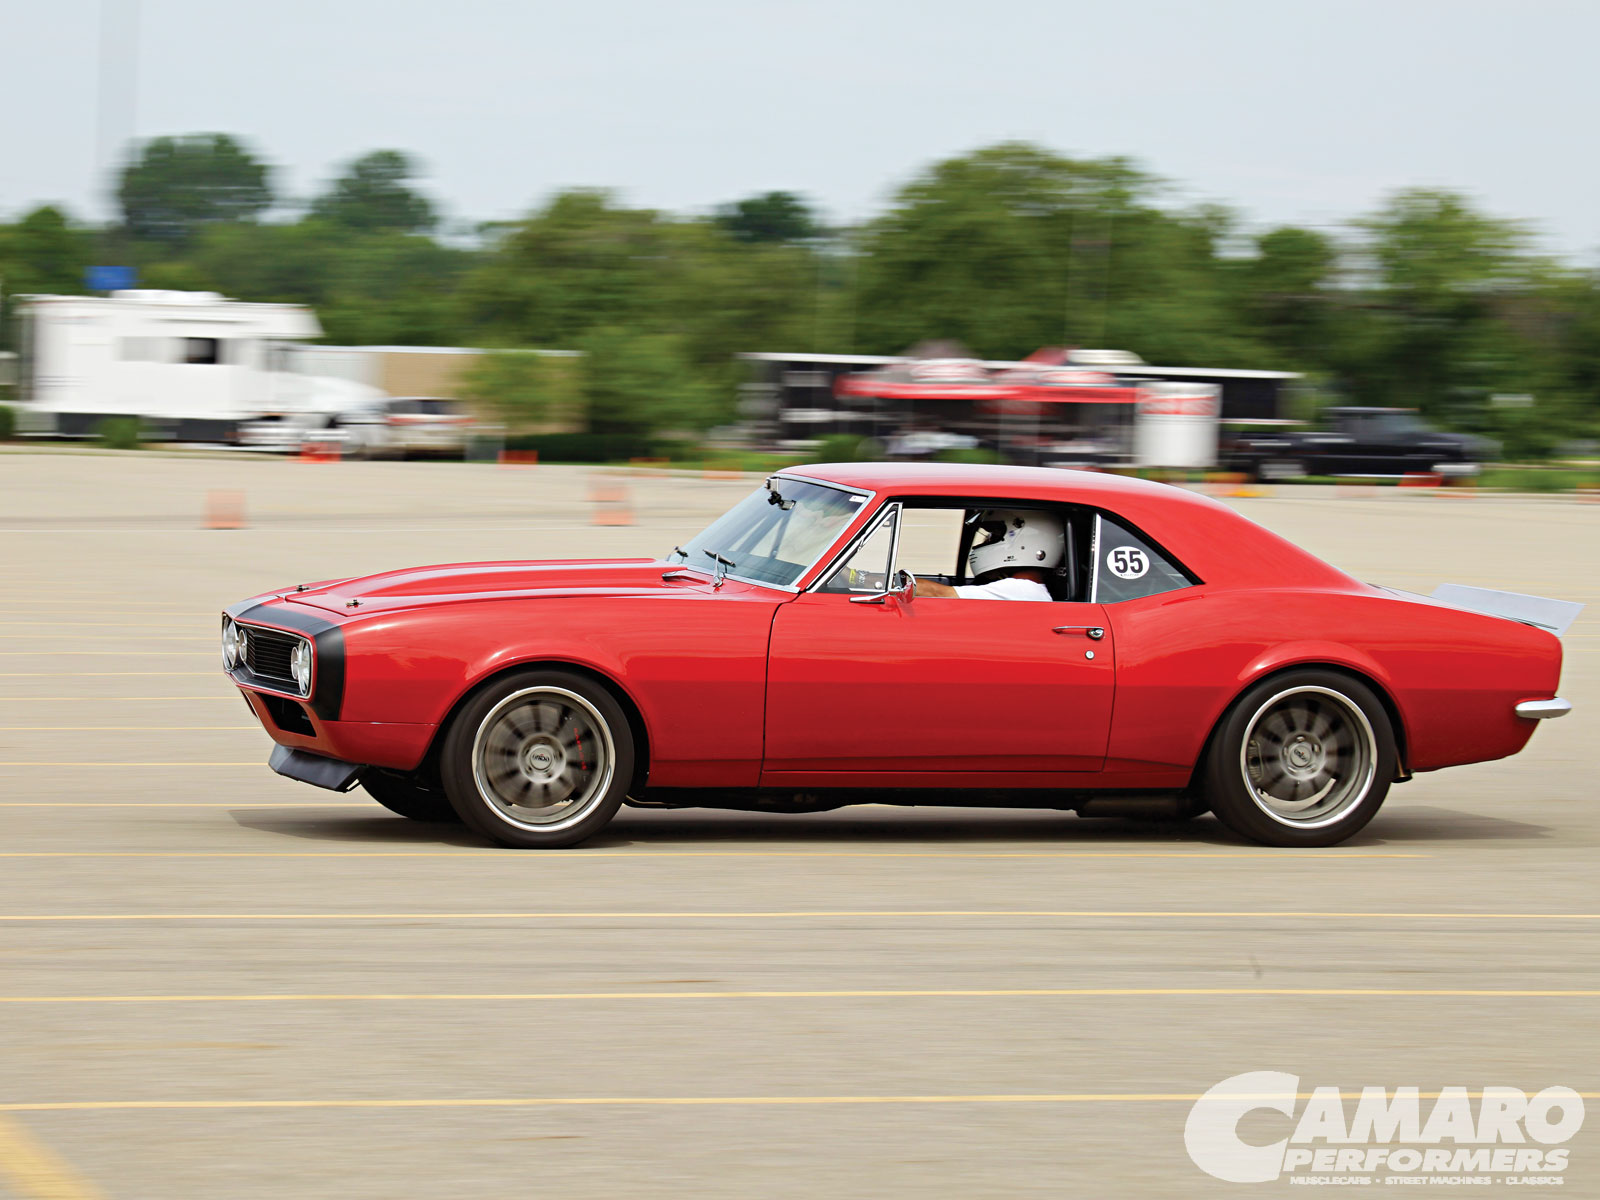 Camp_1010_01_o 1967_chevy_camaro Left_side